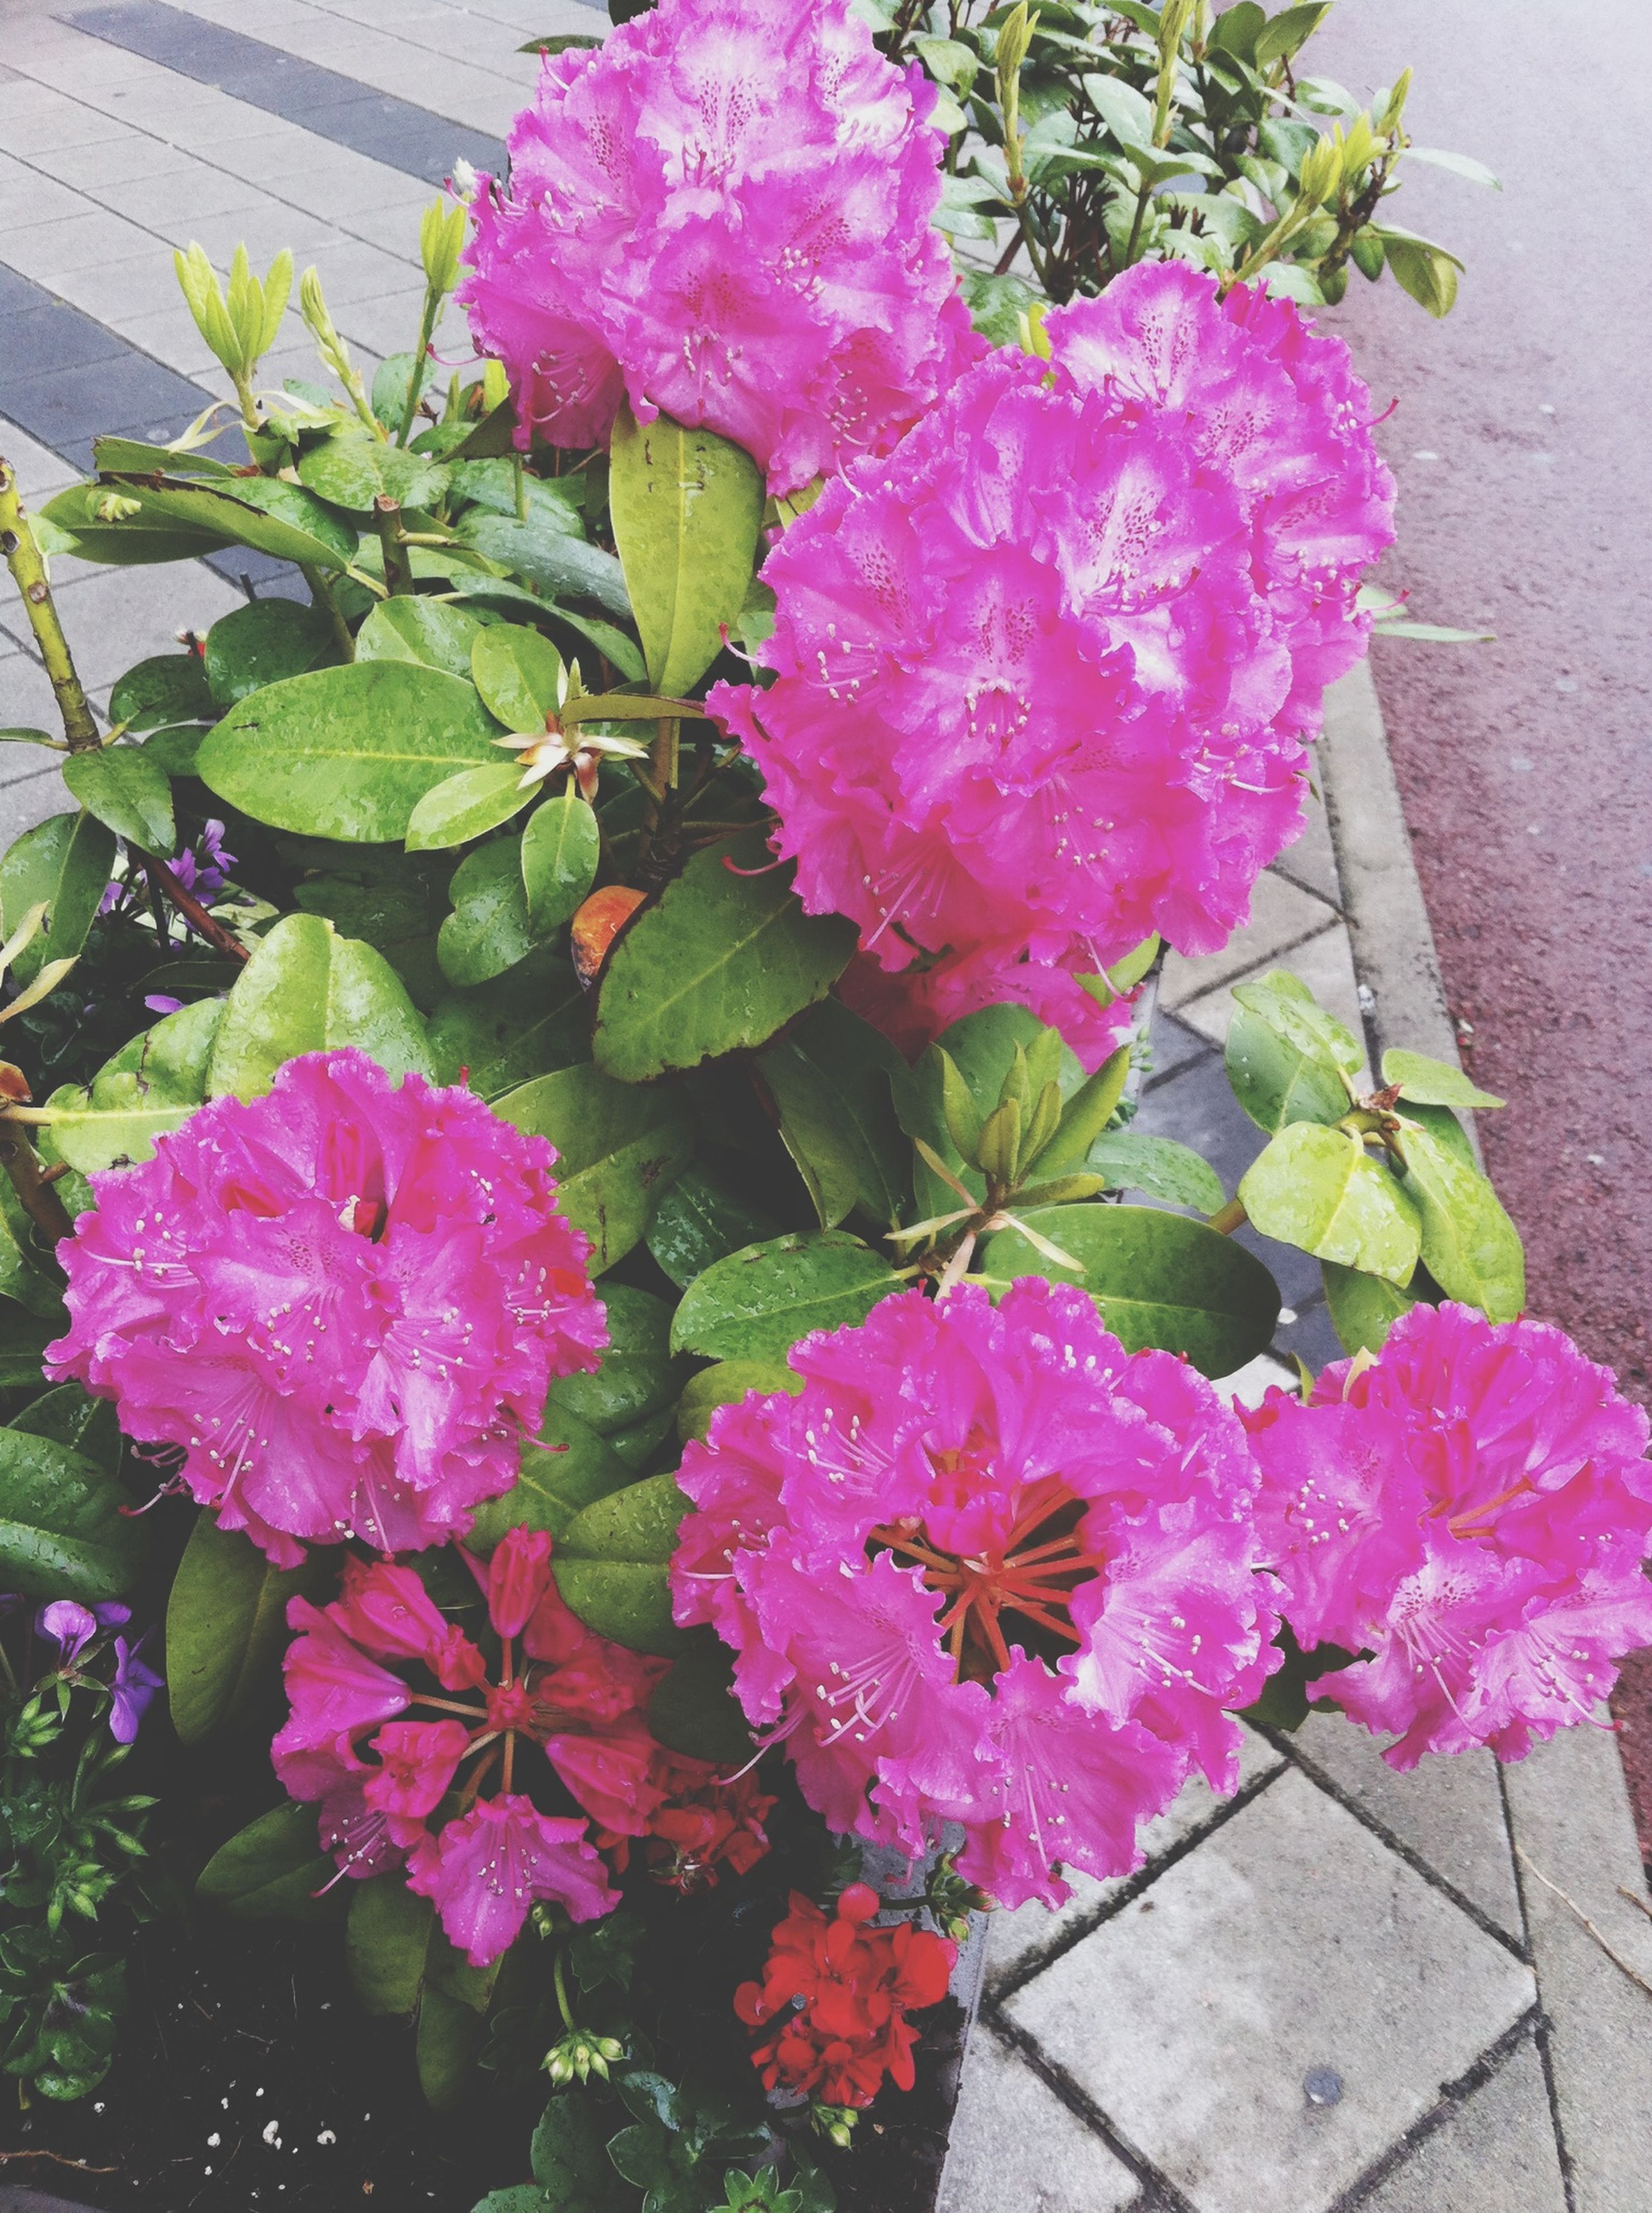 flower, freshness, fragility, pink color, petal, growth, beauty in nature, plant, blooming, flower head, nature, leaf, in bloom, high angle view, blossom, springtime, bunch of flowers, potted plant, pink, outdoors